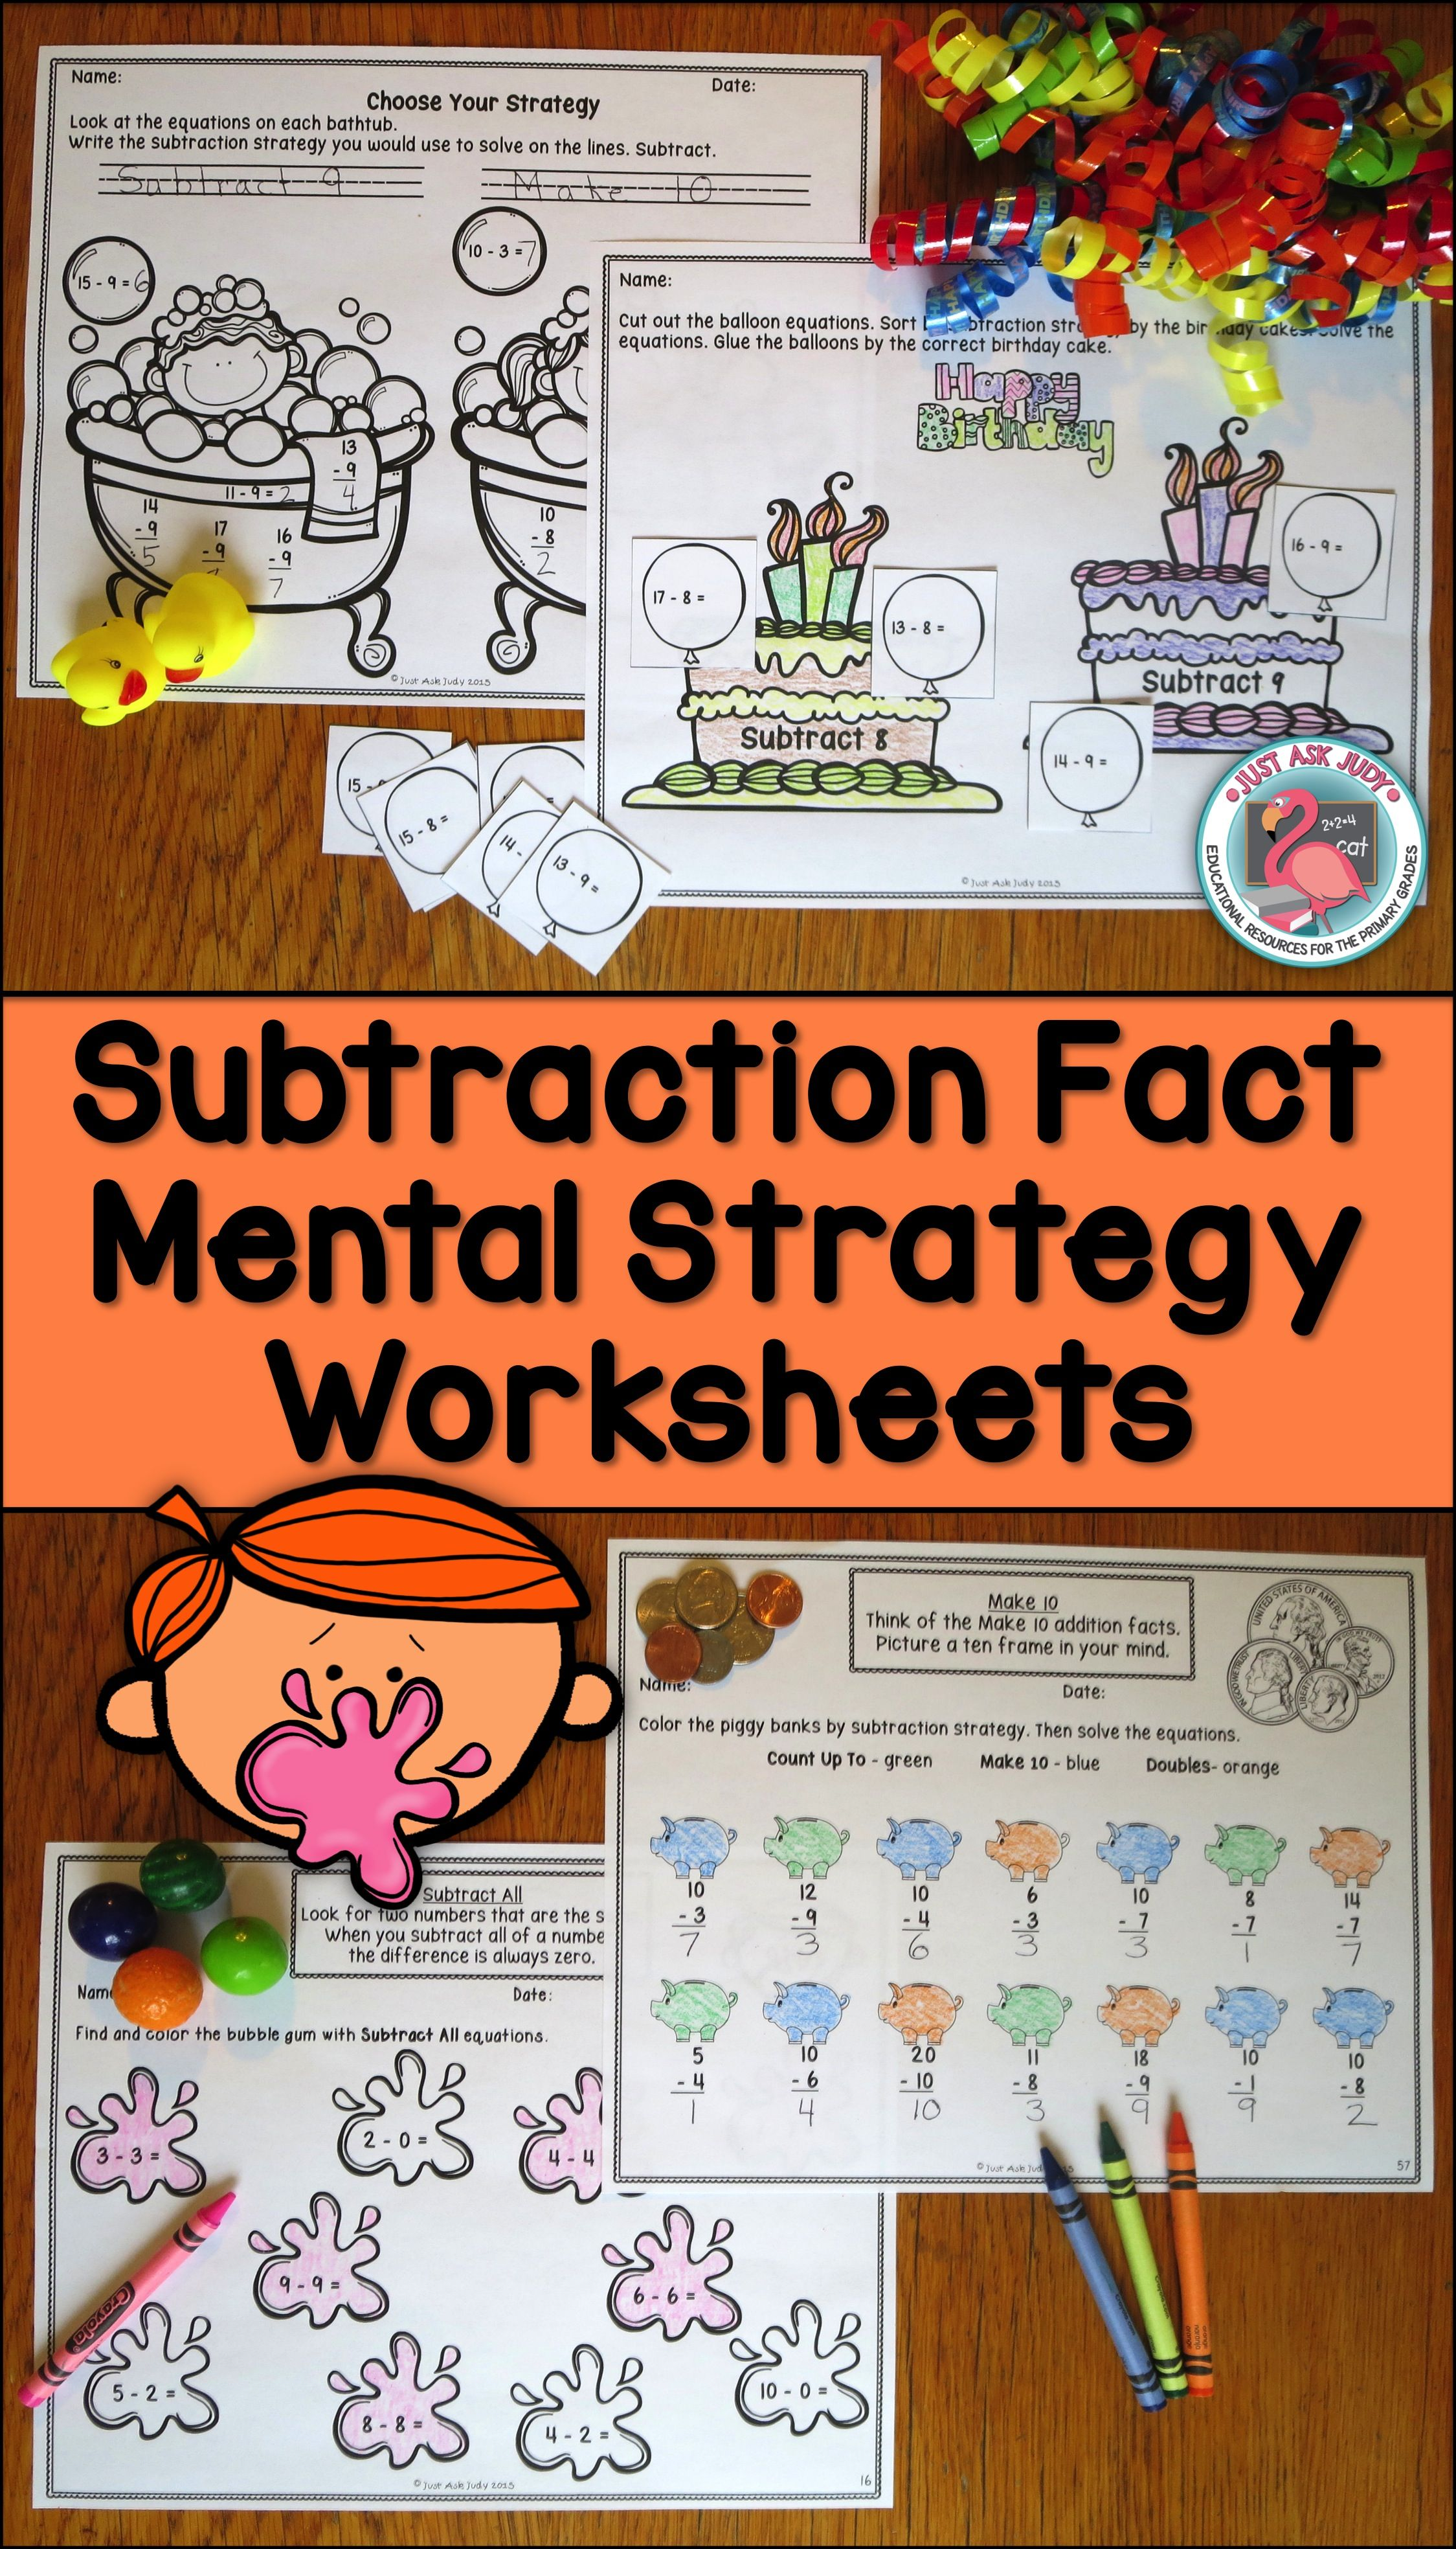 This Is A Set Of Systematic Sequential Worksheets To Reinforce Identifying Discriminating And Applying Mental S Subtraction Facts Subtraction Math Resources [ 3936 x 2249 Pixel ]